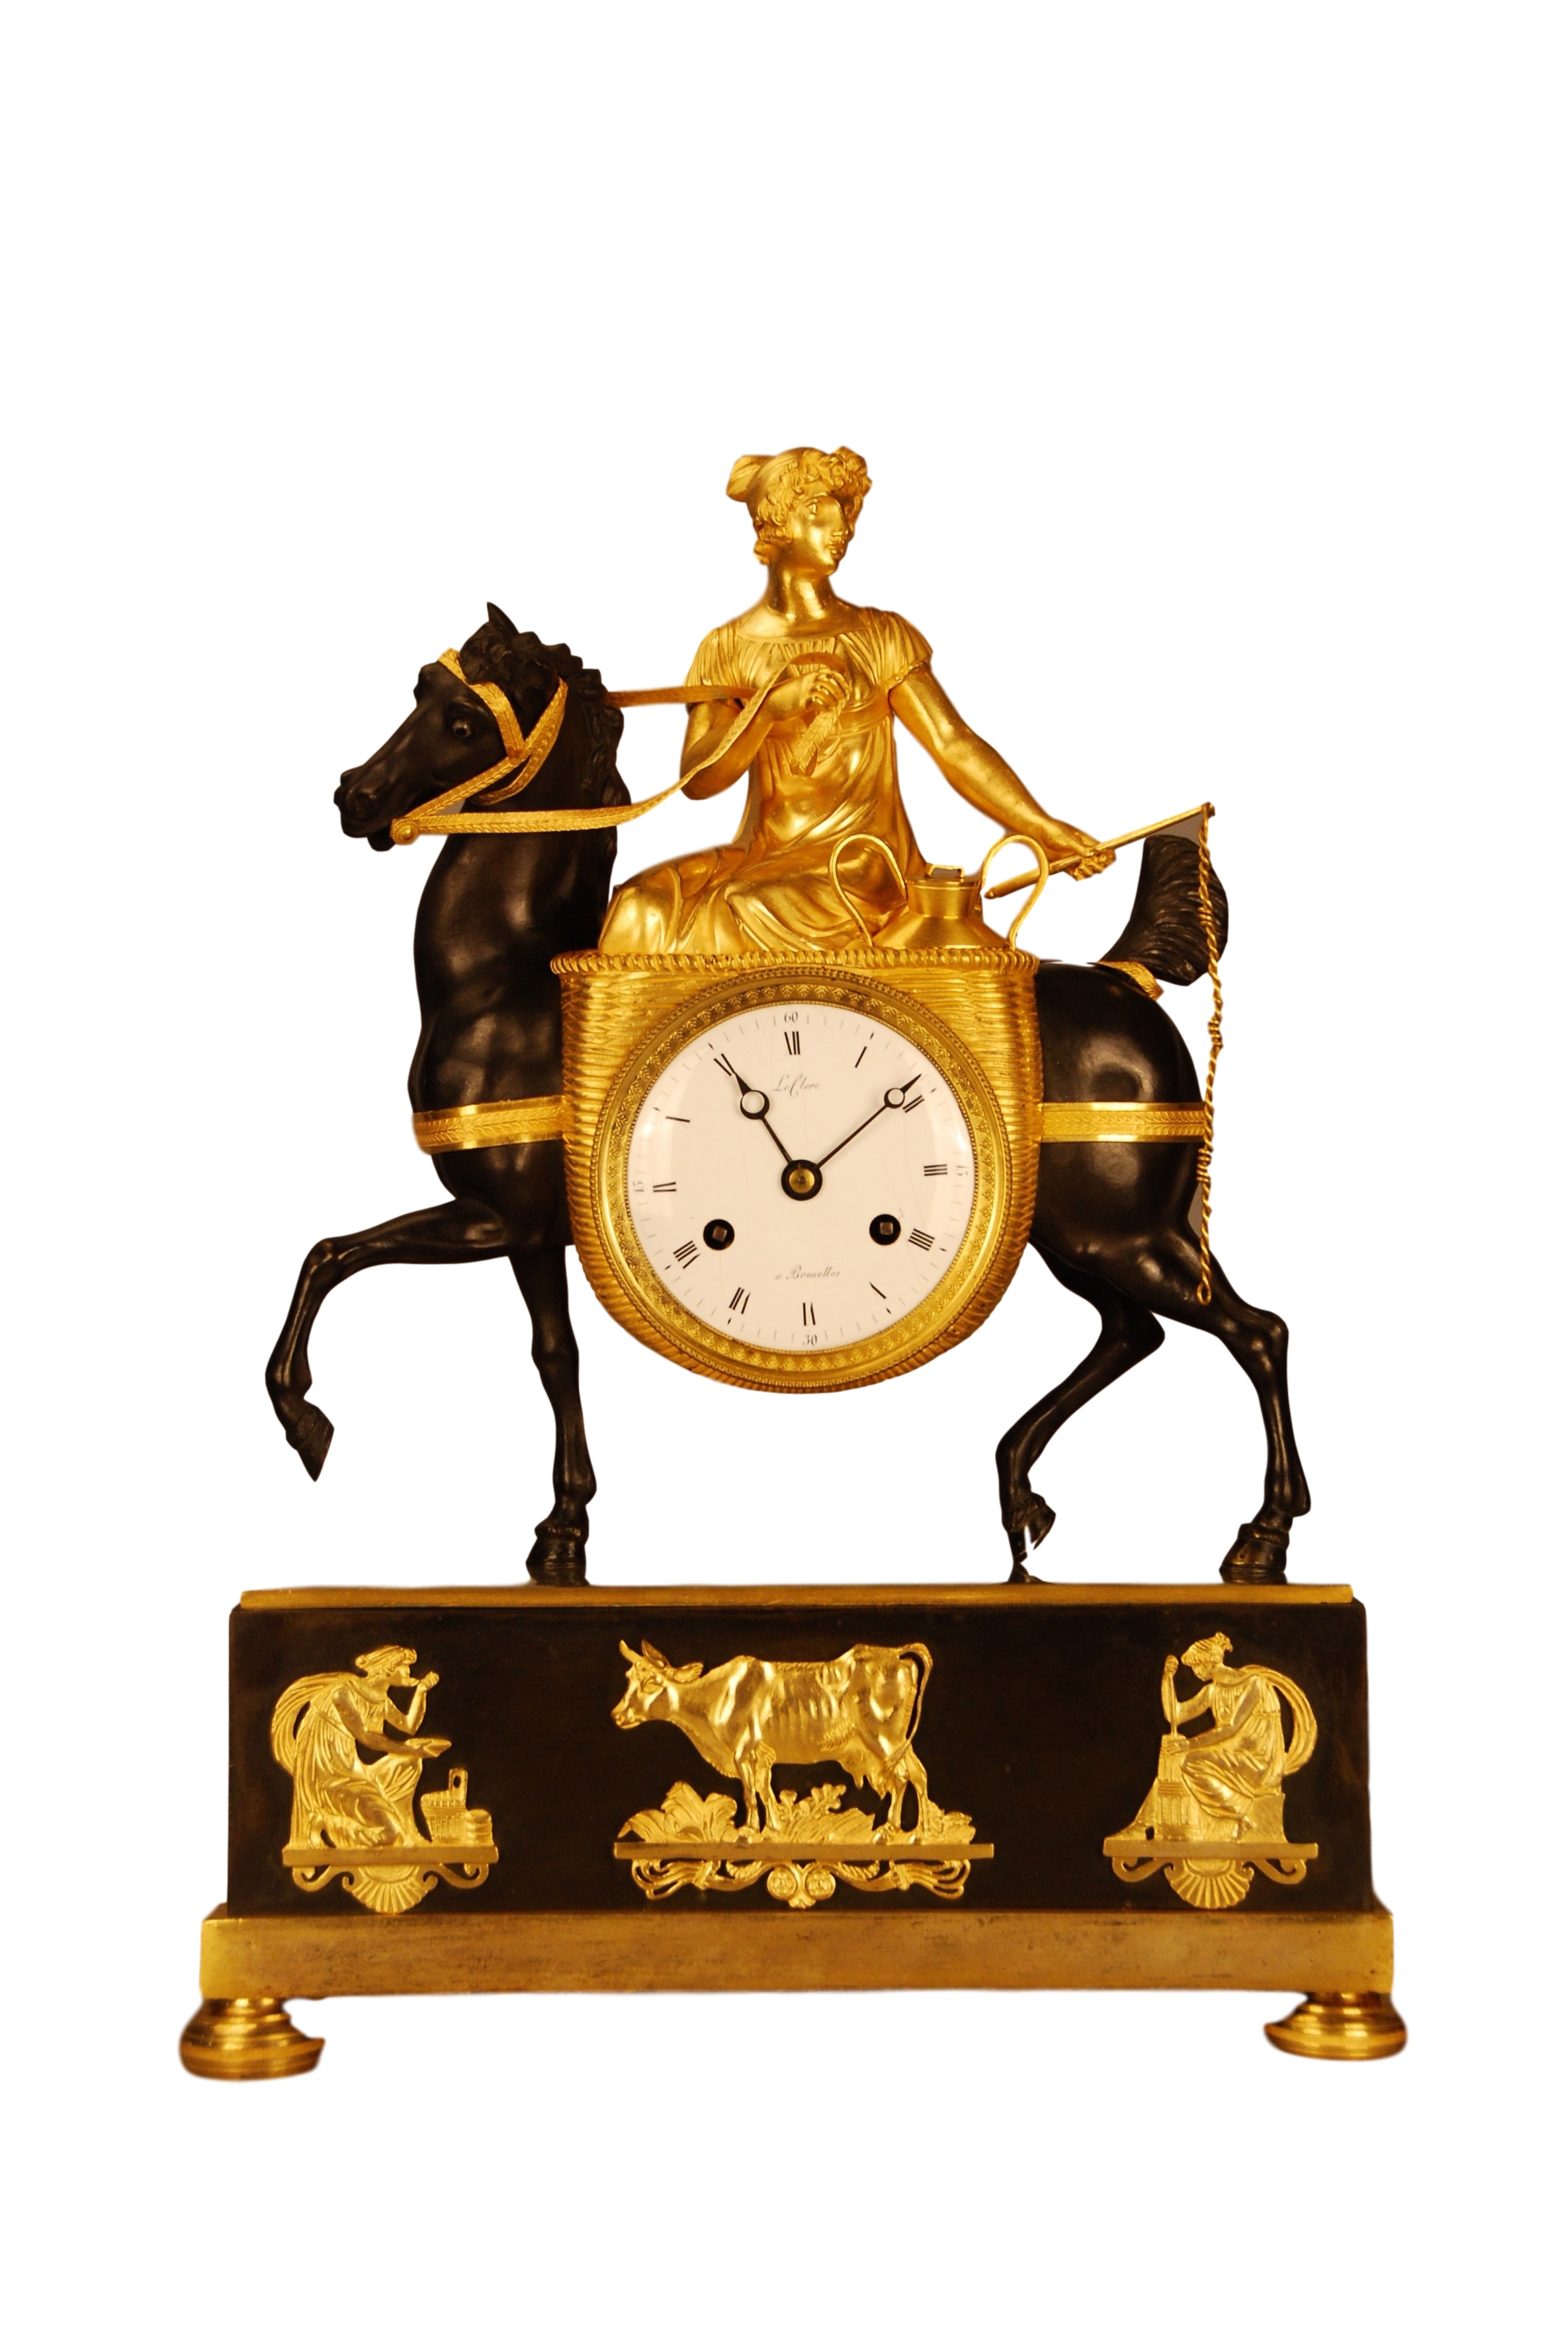 French Empire mantel clock 'La laitiere', ca. 1820. Signature: Le Clerc a Bruxelles